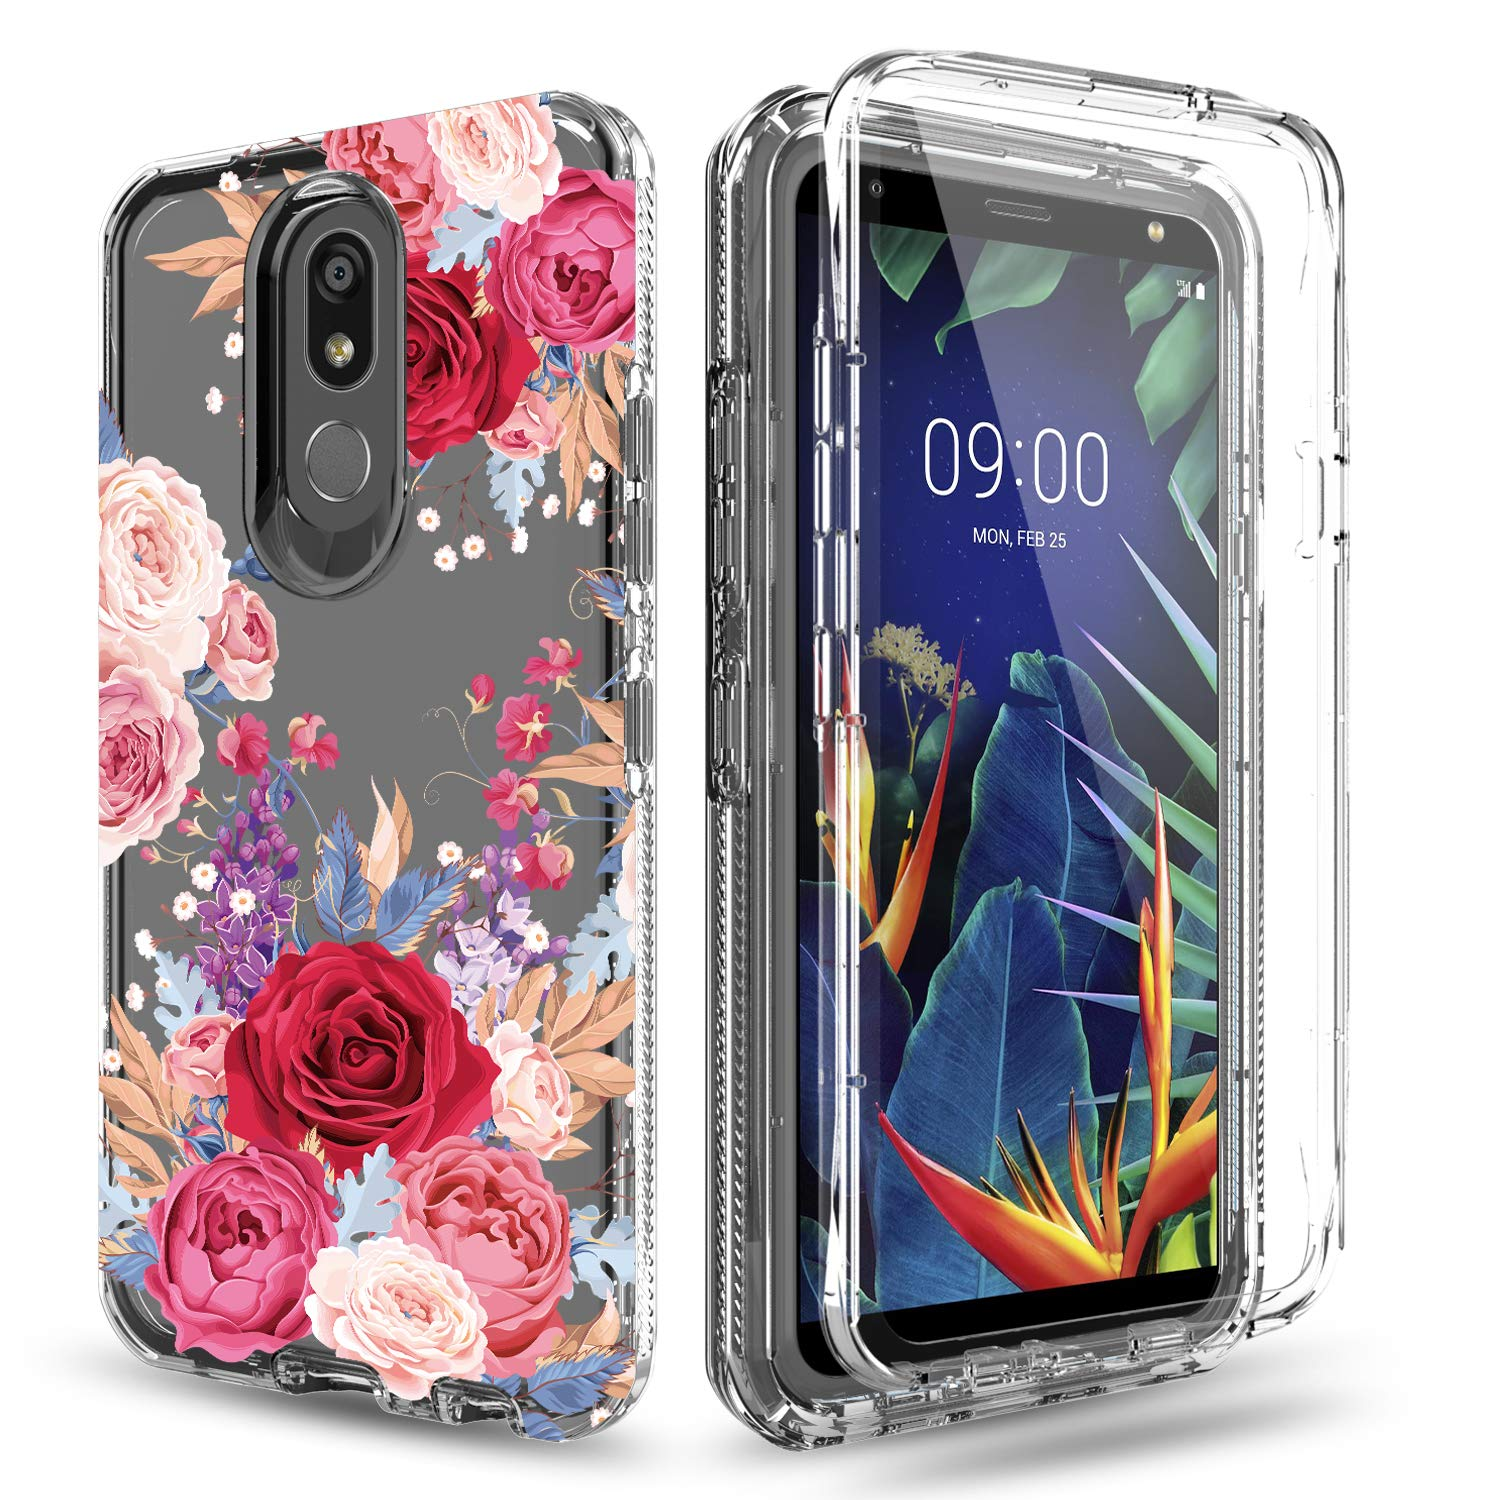 Venoro LG K40 Case, LG Solo LTE, LG Harmony 3, LG Xpression Plus 2 Case, Rugged Full Body Protective Case Anti-Scratch Shockproof Cover Ultra Fit for LG K12 Plus/LMX420/LG X4 2019 (Flower)